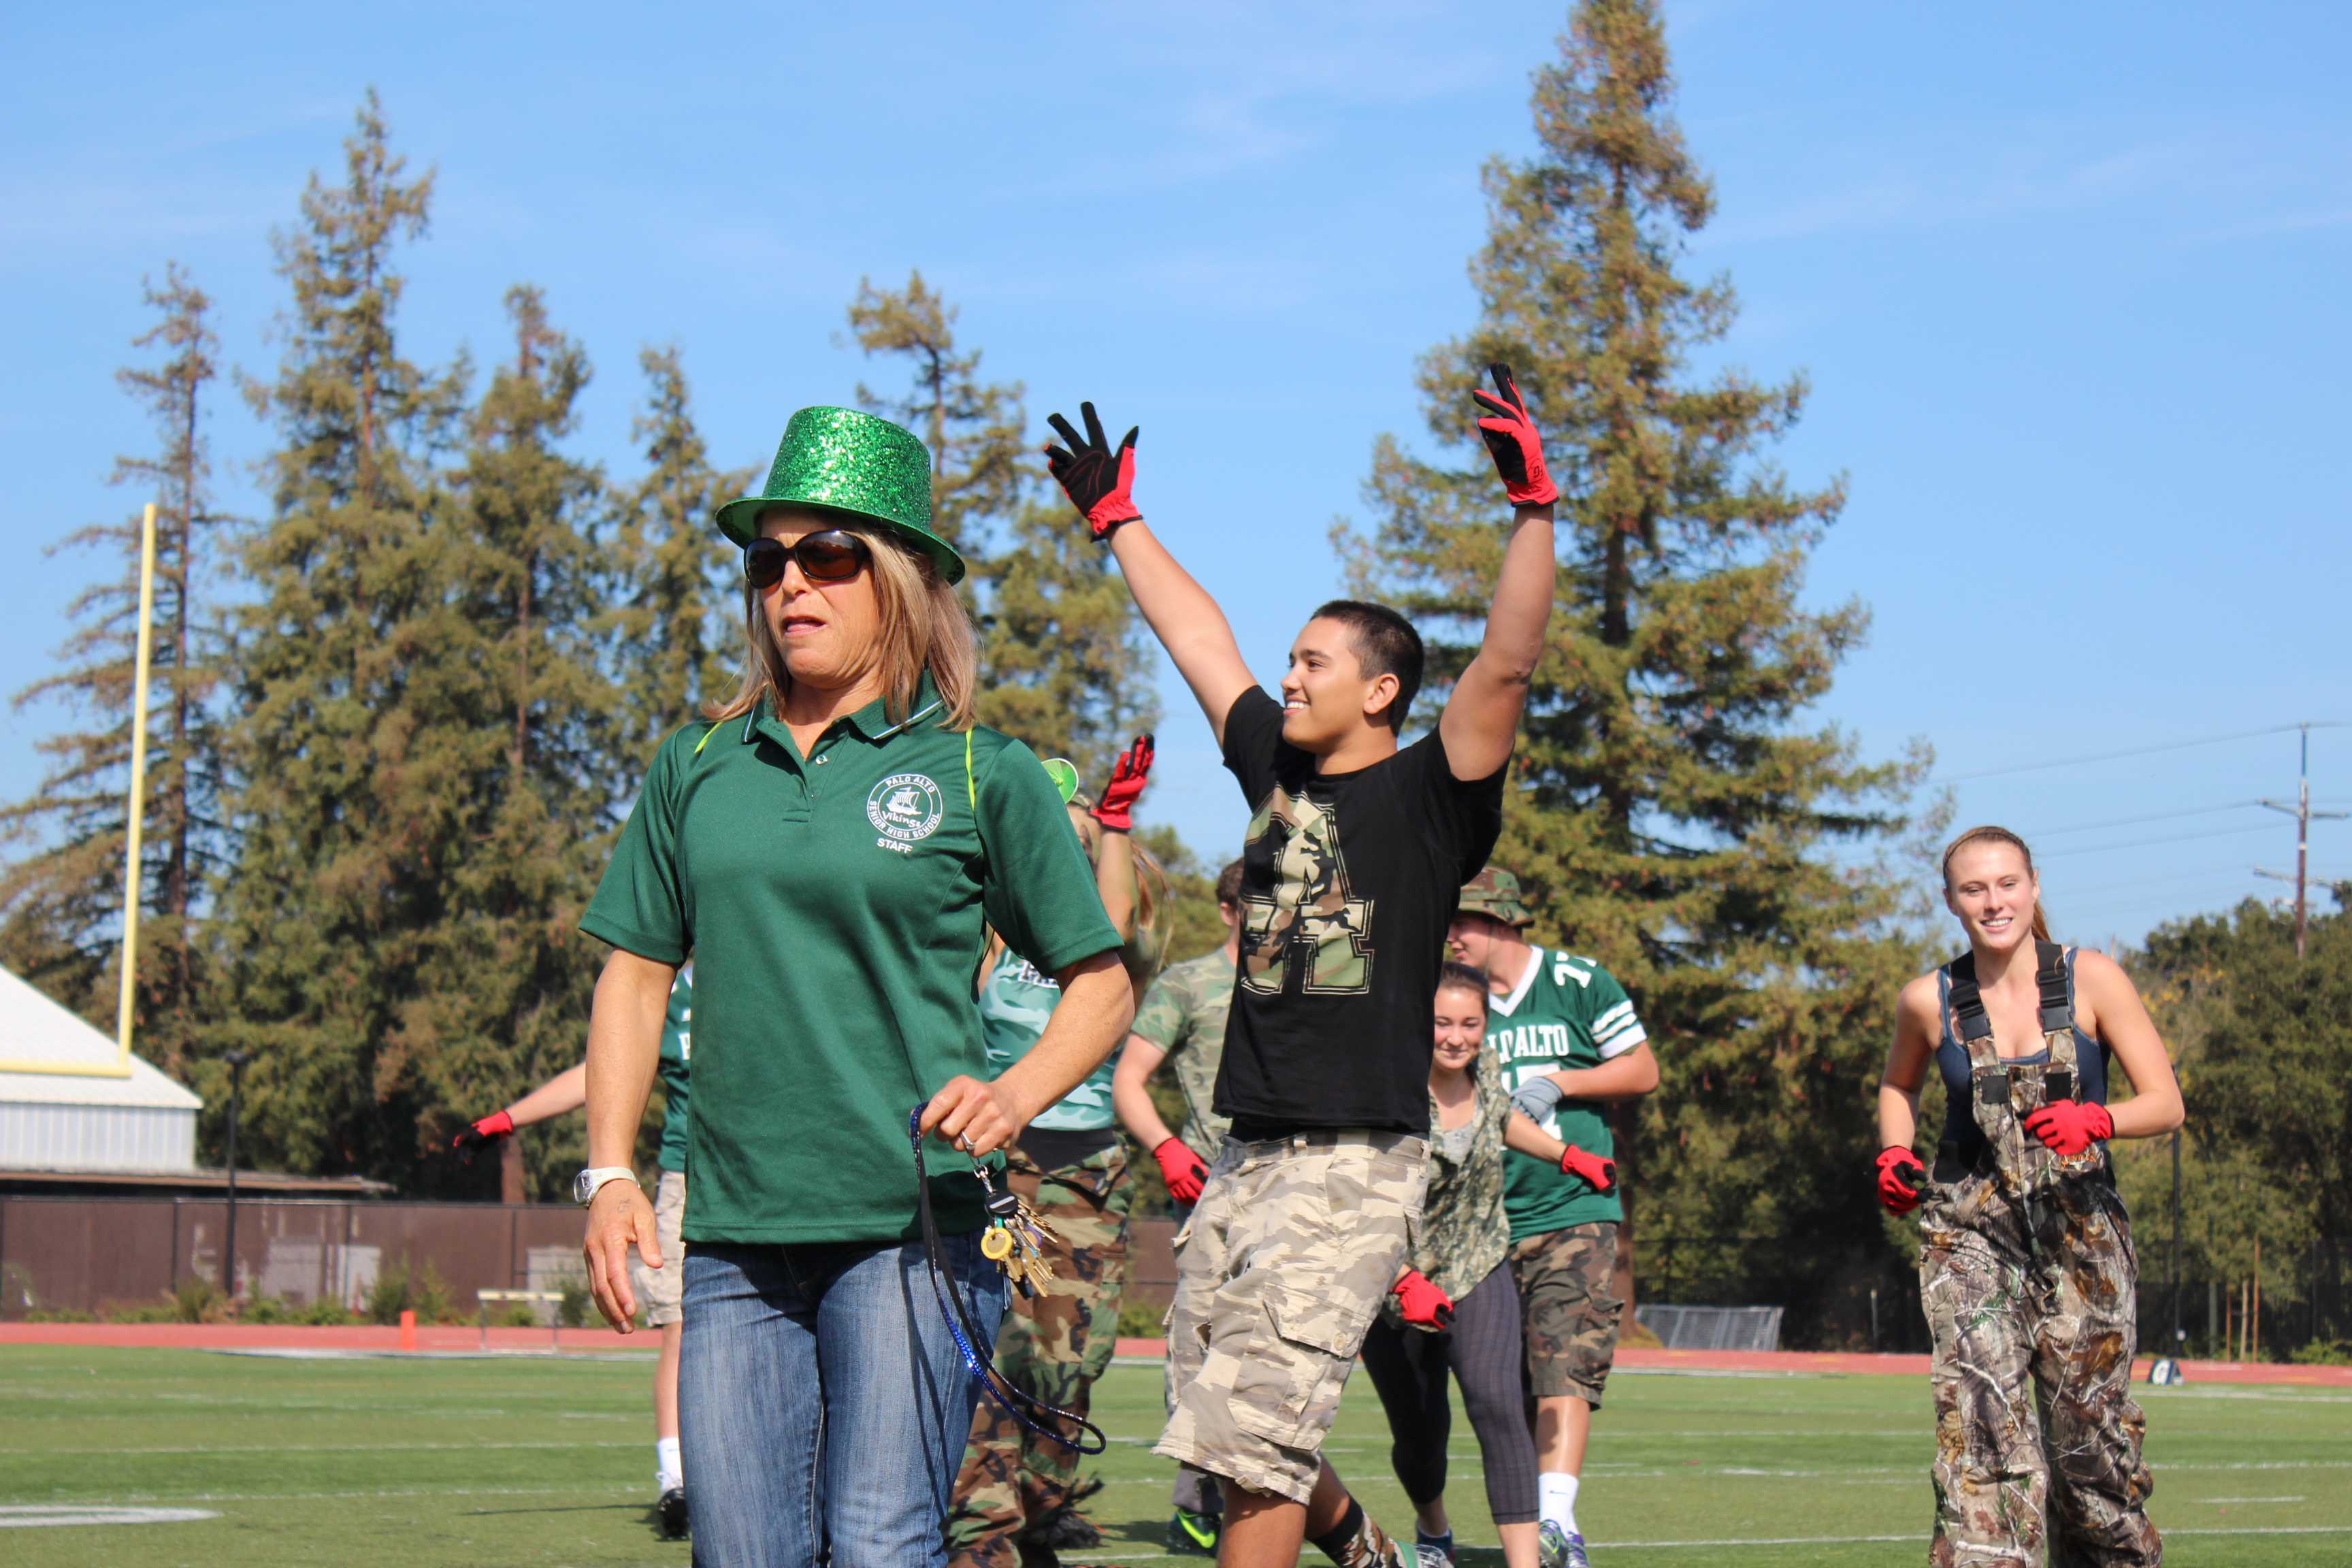 Seniors get pumped for Tug of War. They win the event after beating the freshmen. Photo by Lizzie Chun.